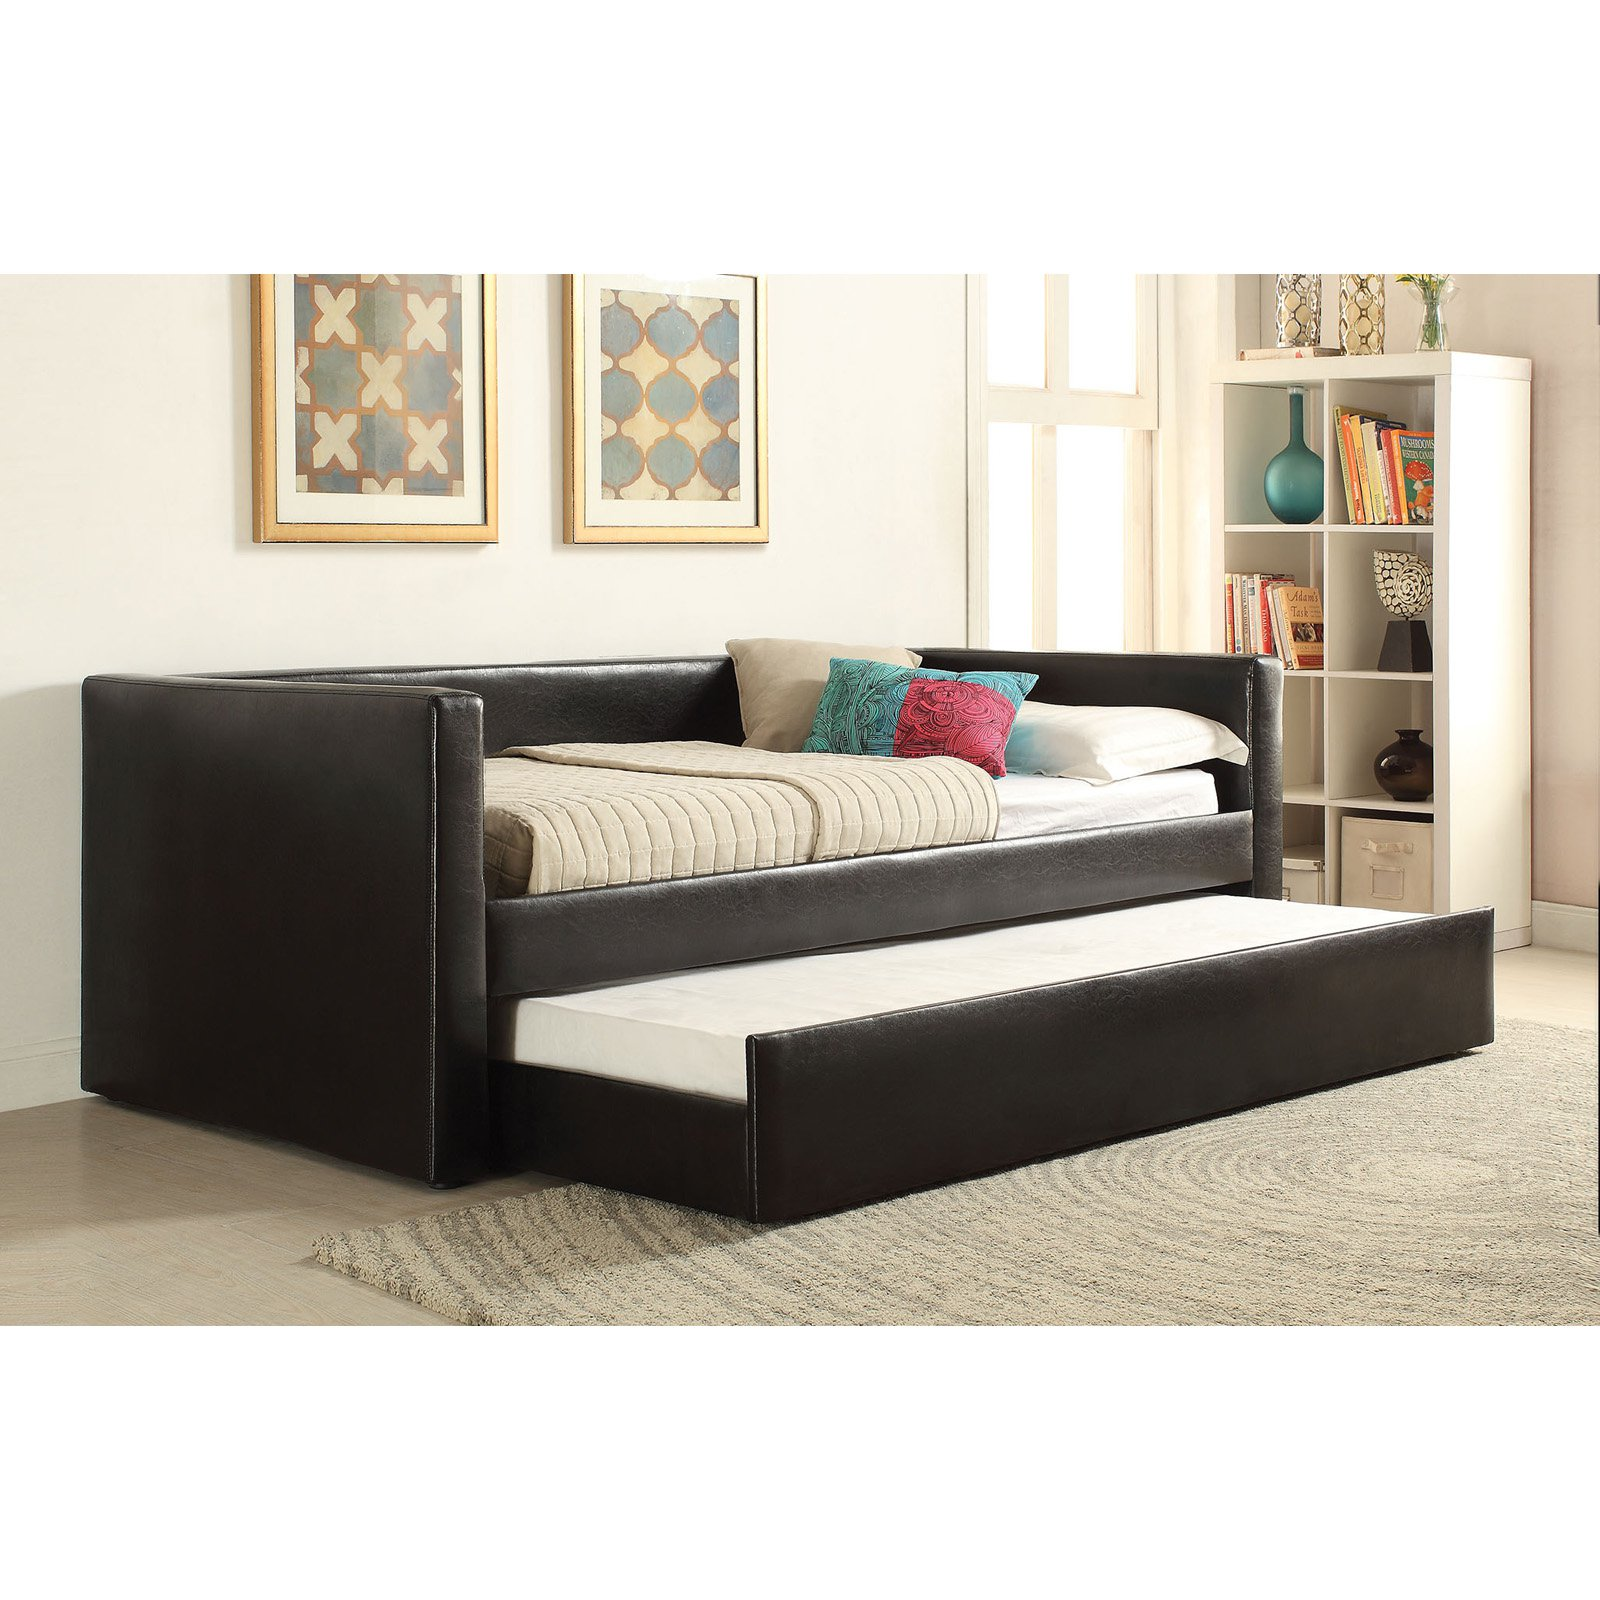 Cheap Beds Melbourne Acme Melbourne Upholstered Day Bed With Trundle